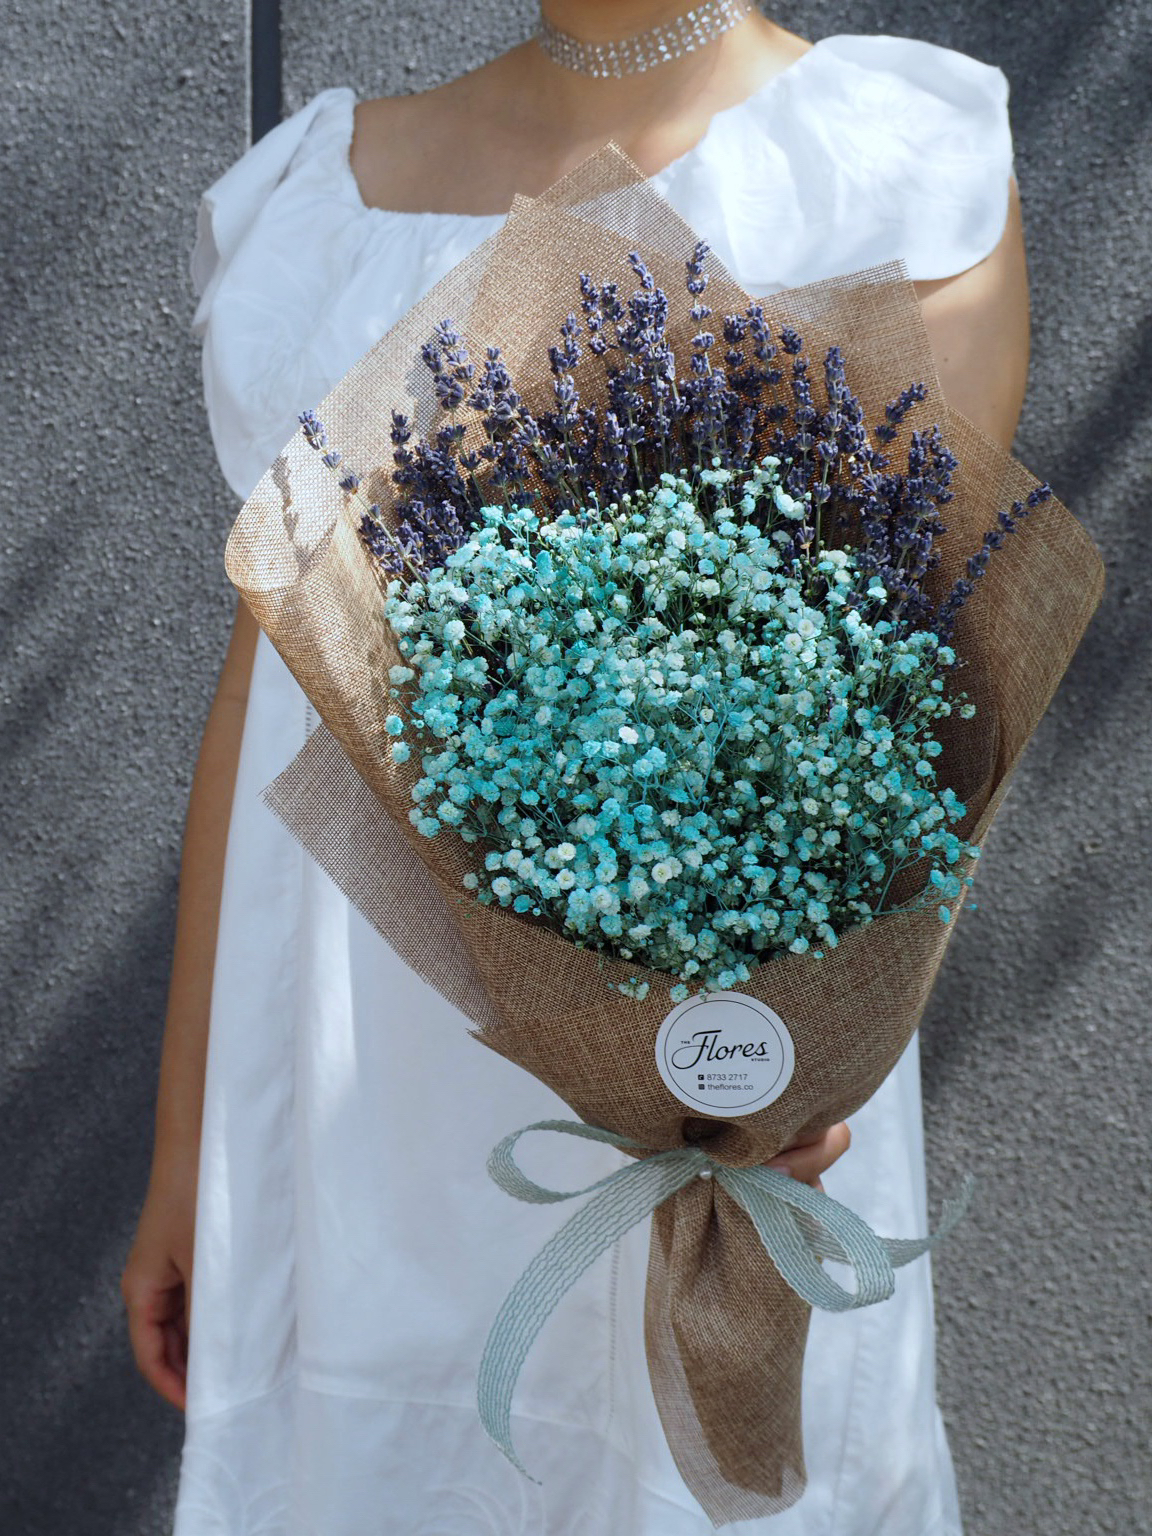 Dried Flower Bouquet Workshop Welcome To The Flores